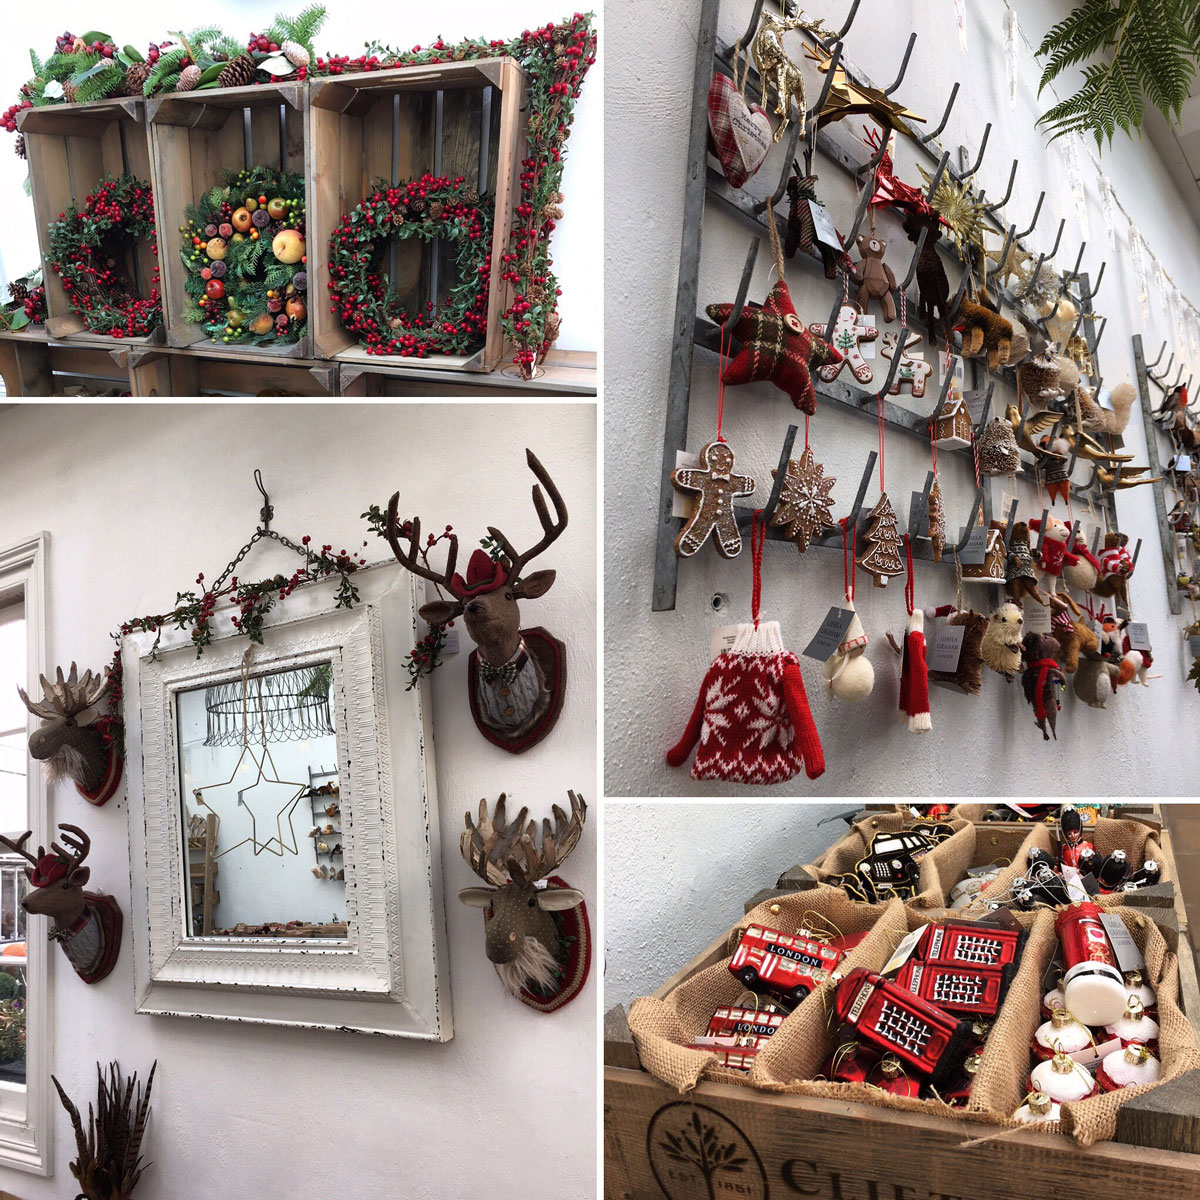 Clifton Nurseries Day 5 of #cliftonchristmas